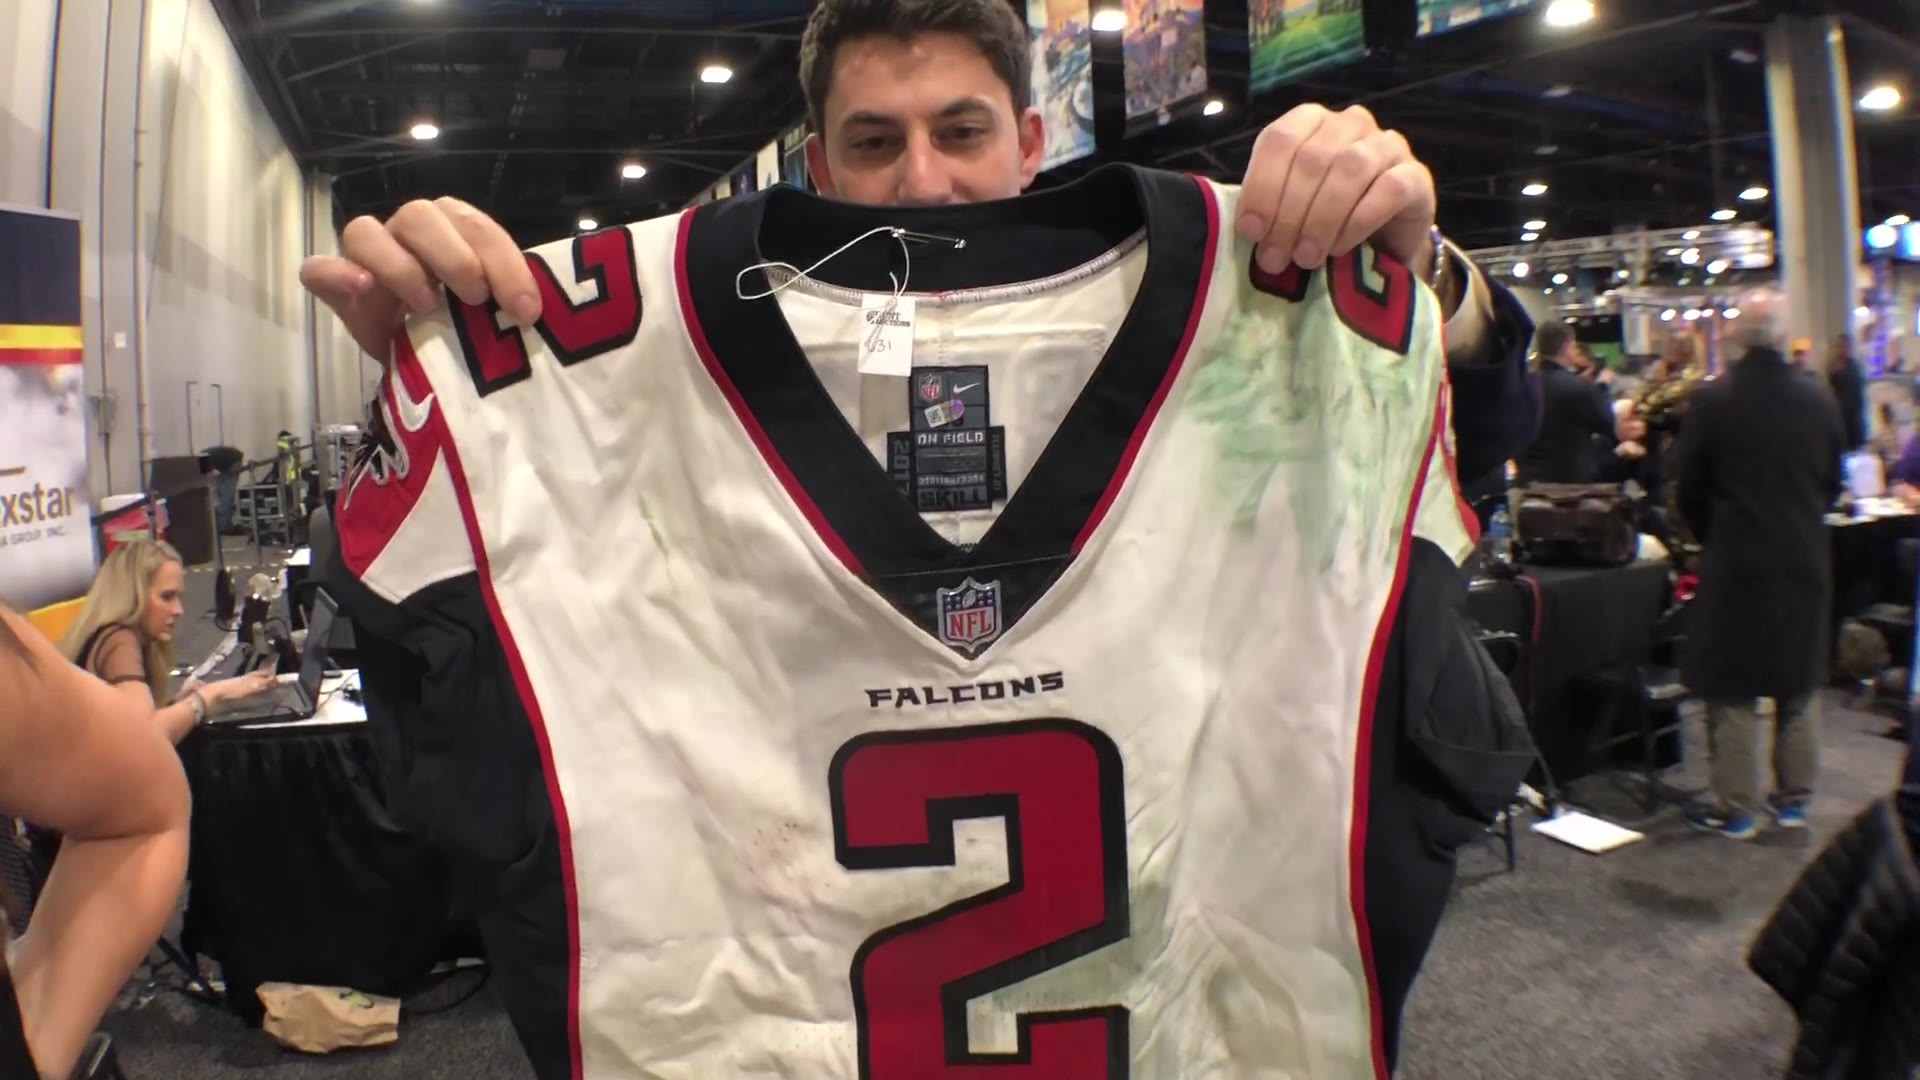 Big Game Memorabilia: Game-worn Matt Ryan jersey, 1967 NFL championship ticket